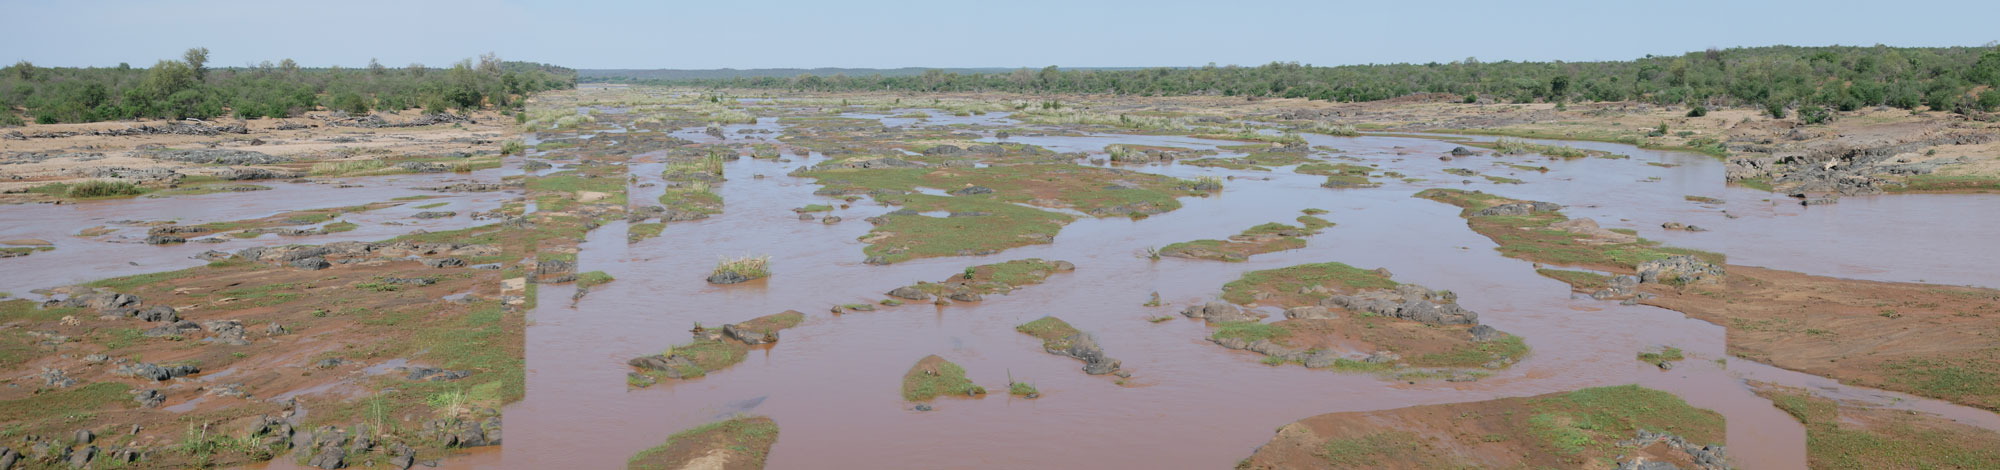 panorama-Olifants-river